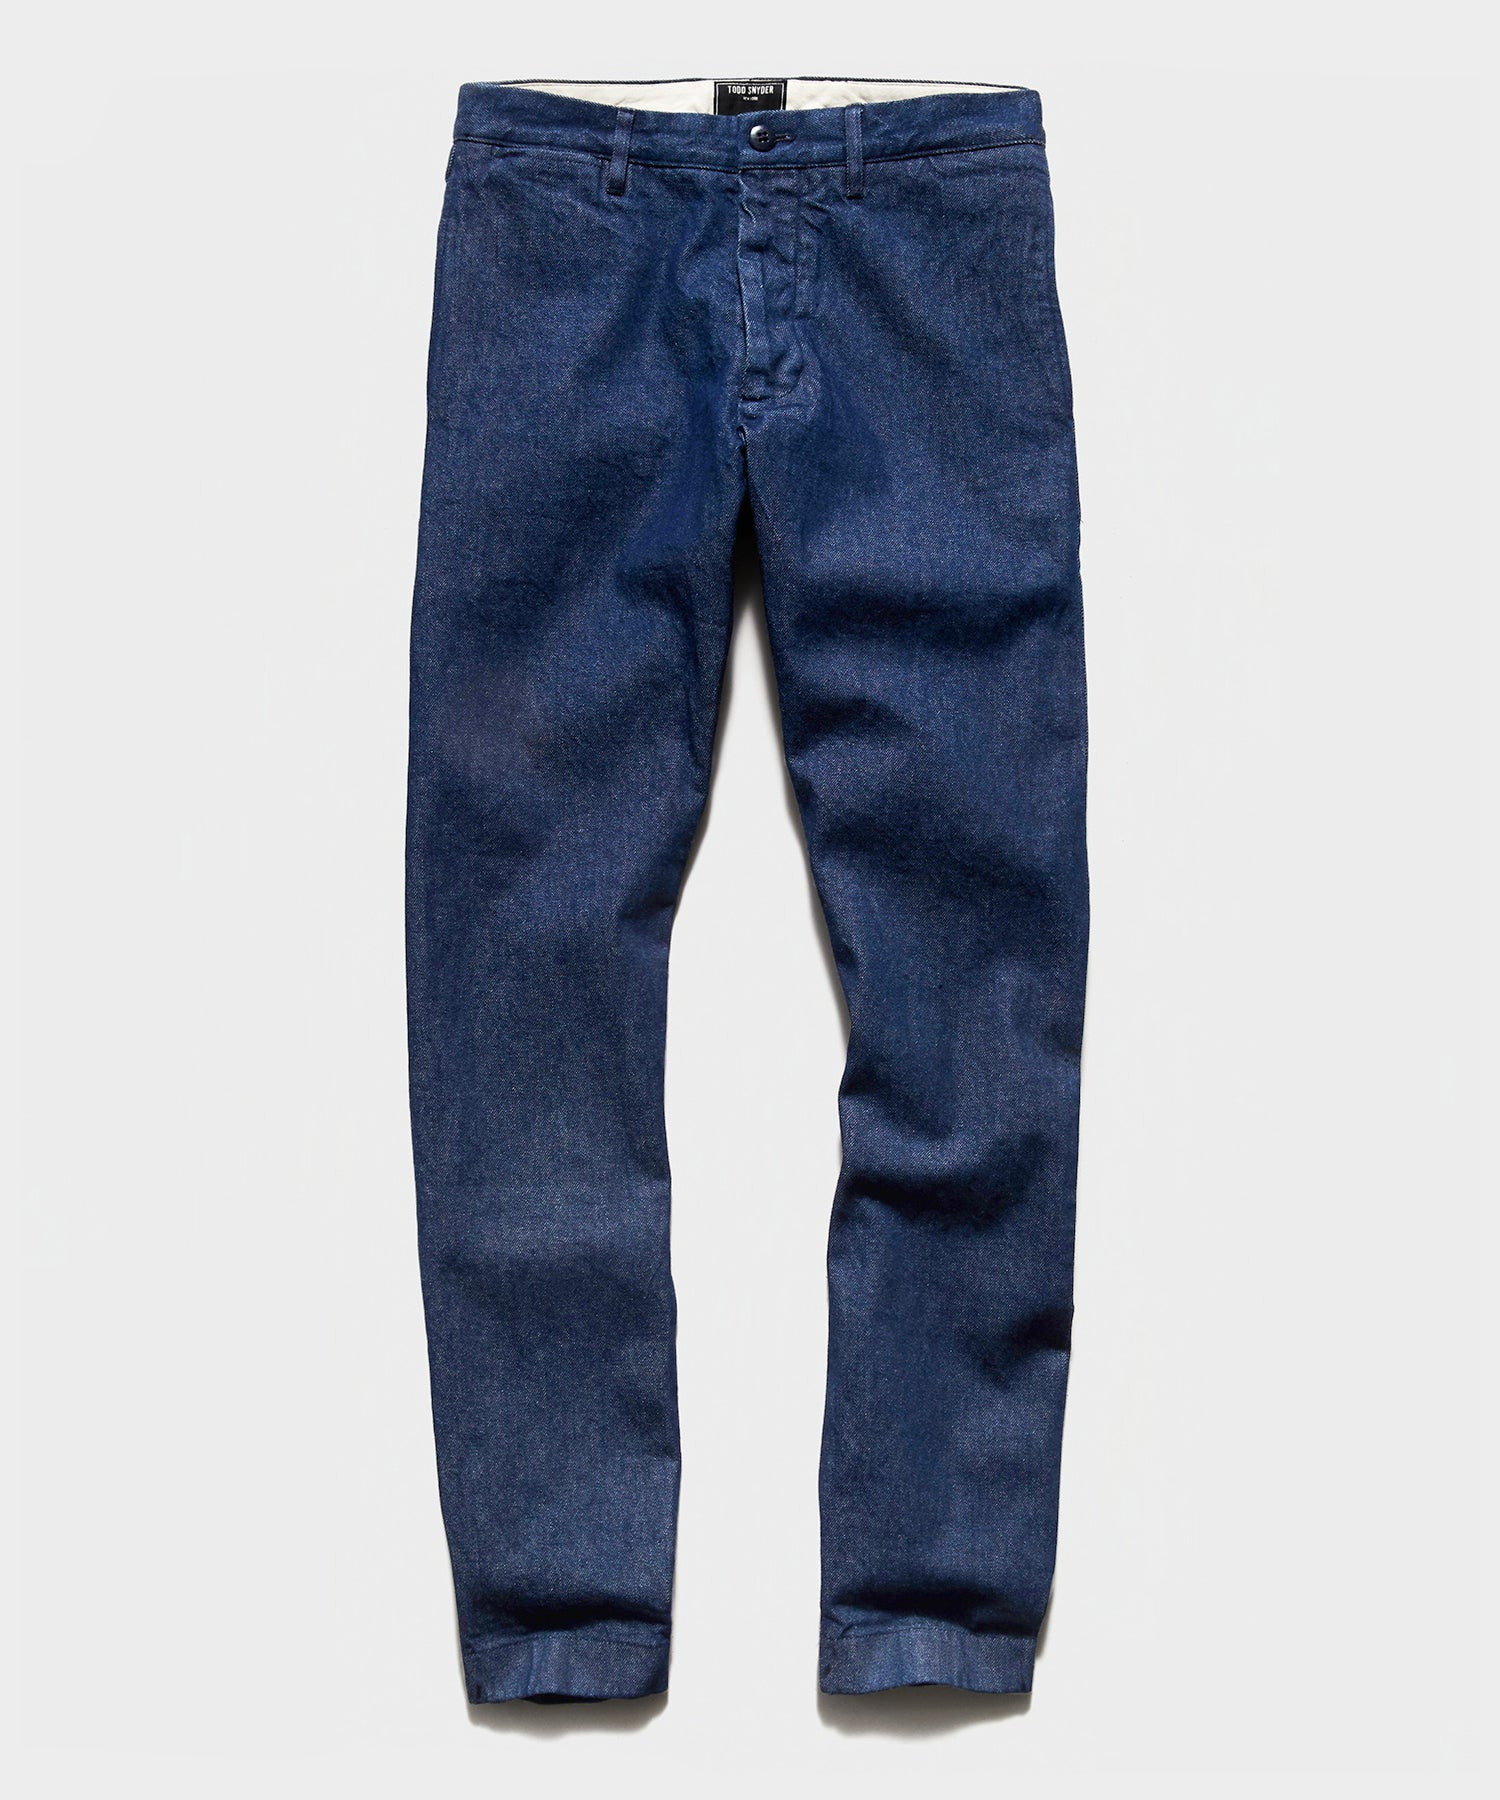 Japanese Denim Selvedge Chino in Stone Wash